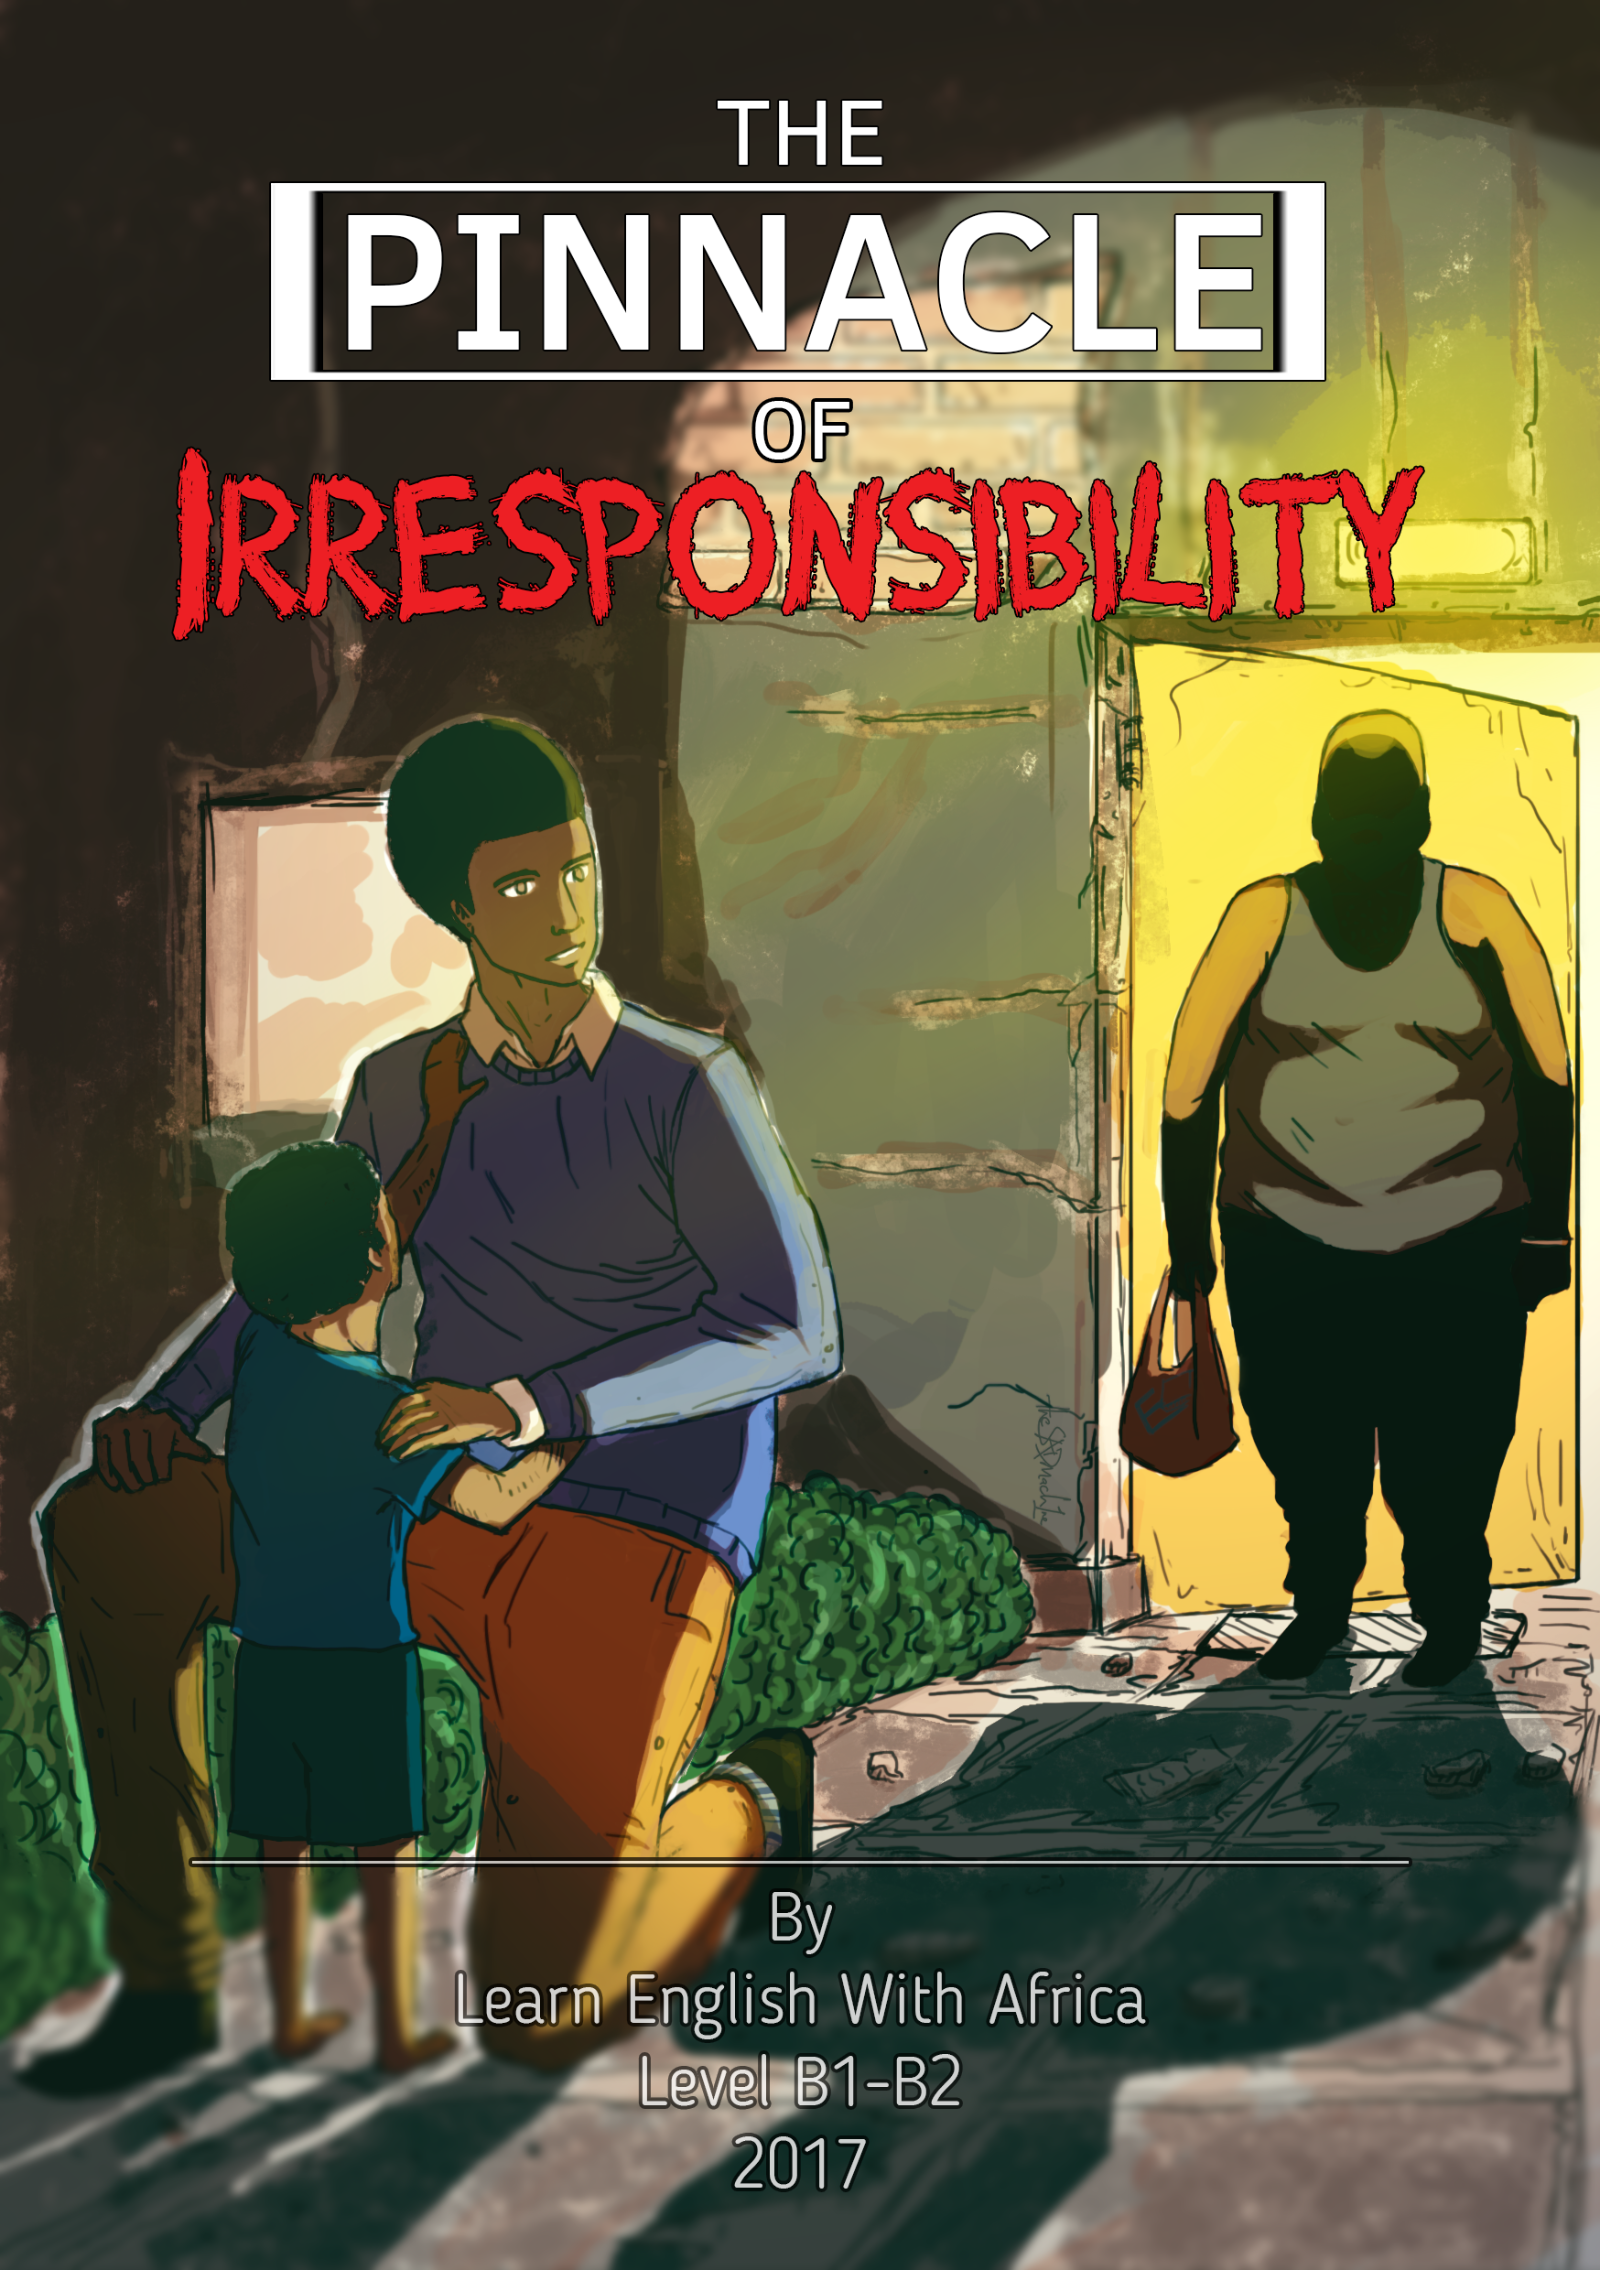 The Pinnacle of Irresponsibility, Learn English With Africa Store Selz, 2017